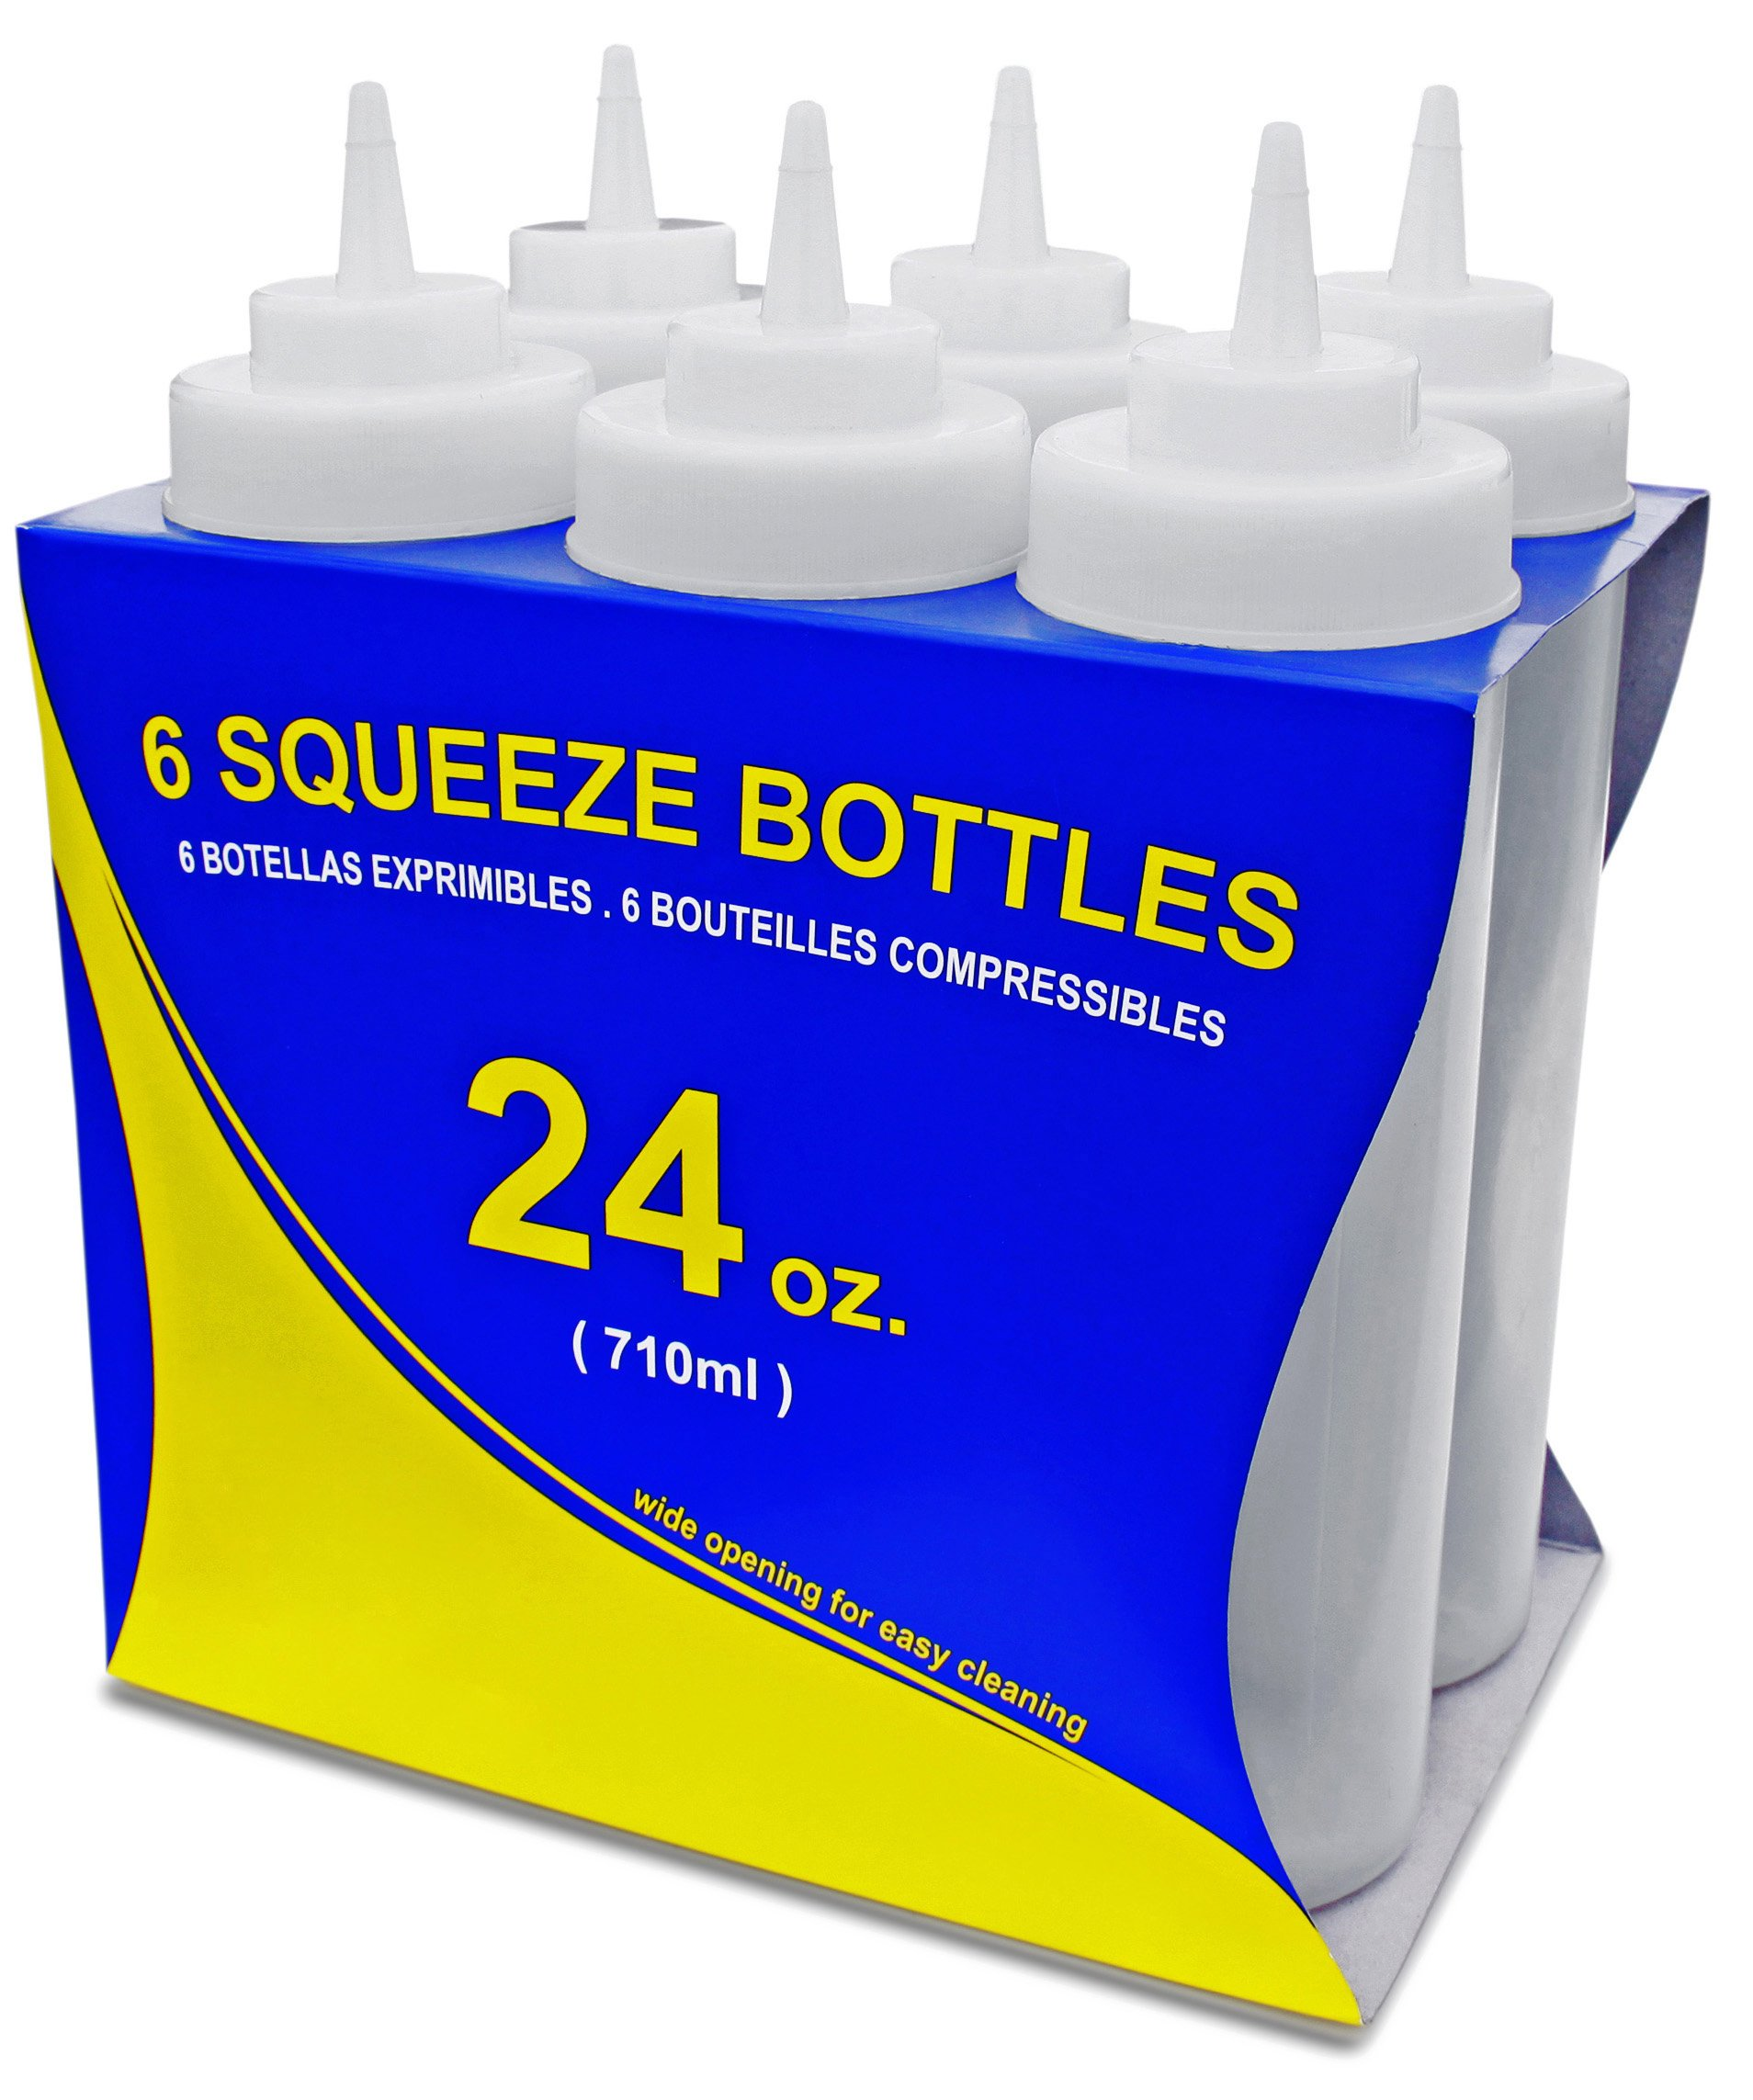 New Star Foodservice 26238 Squeeze Bottles, Plastic, Wide Mouth, 24 oz, Clear, Pack of 6 by New Star Foodservice